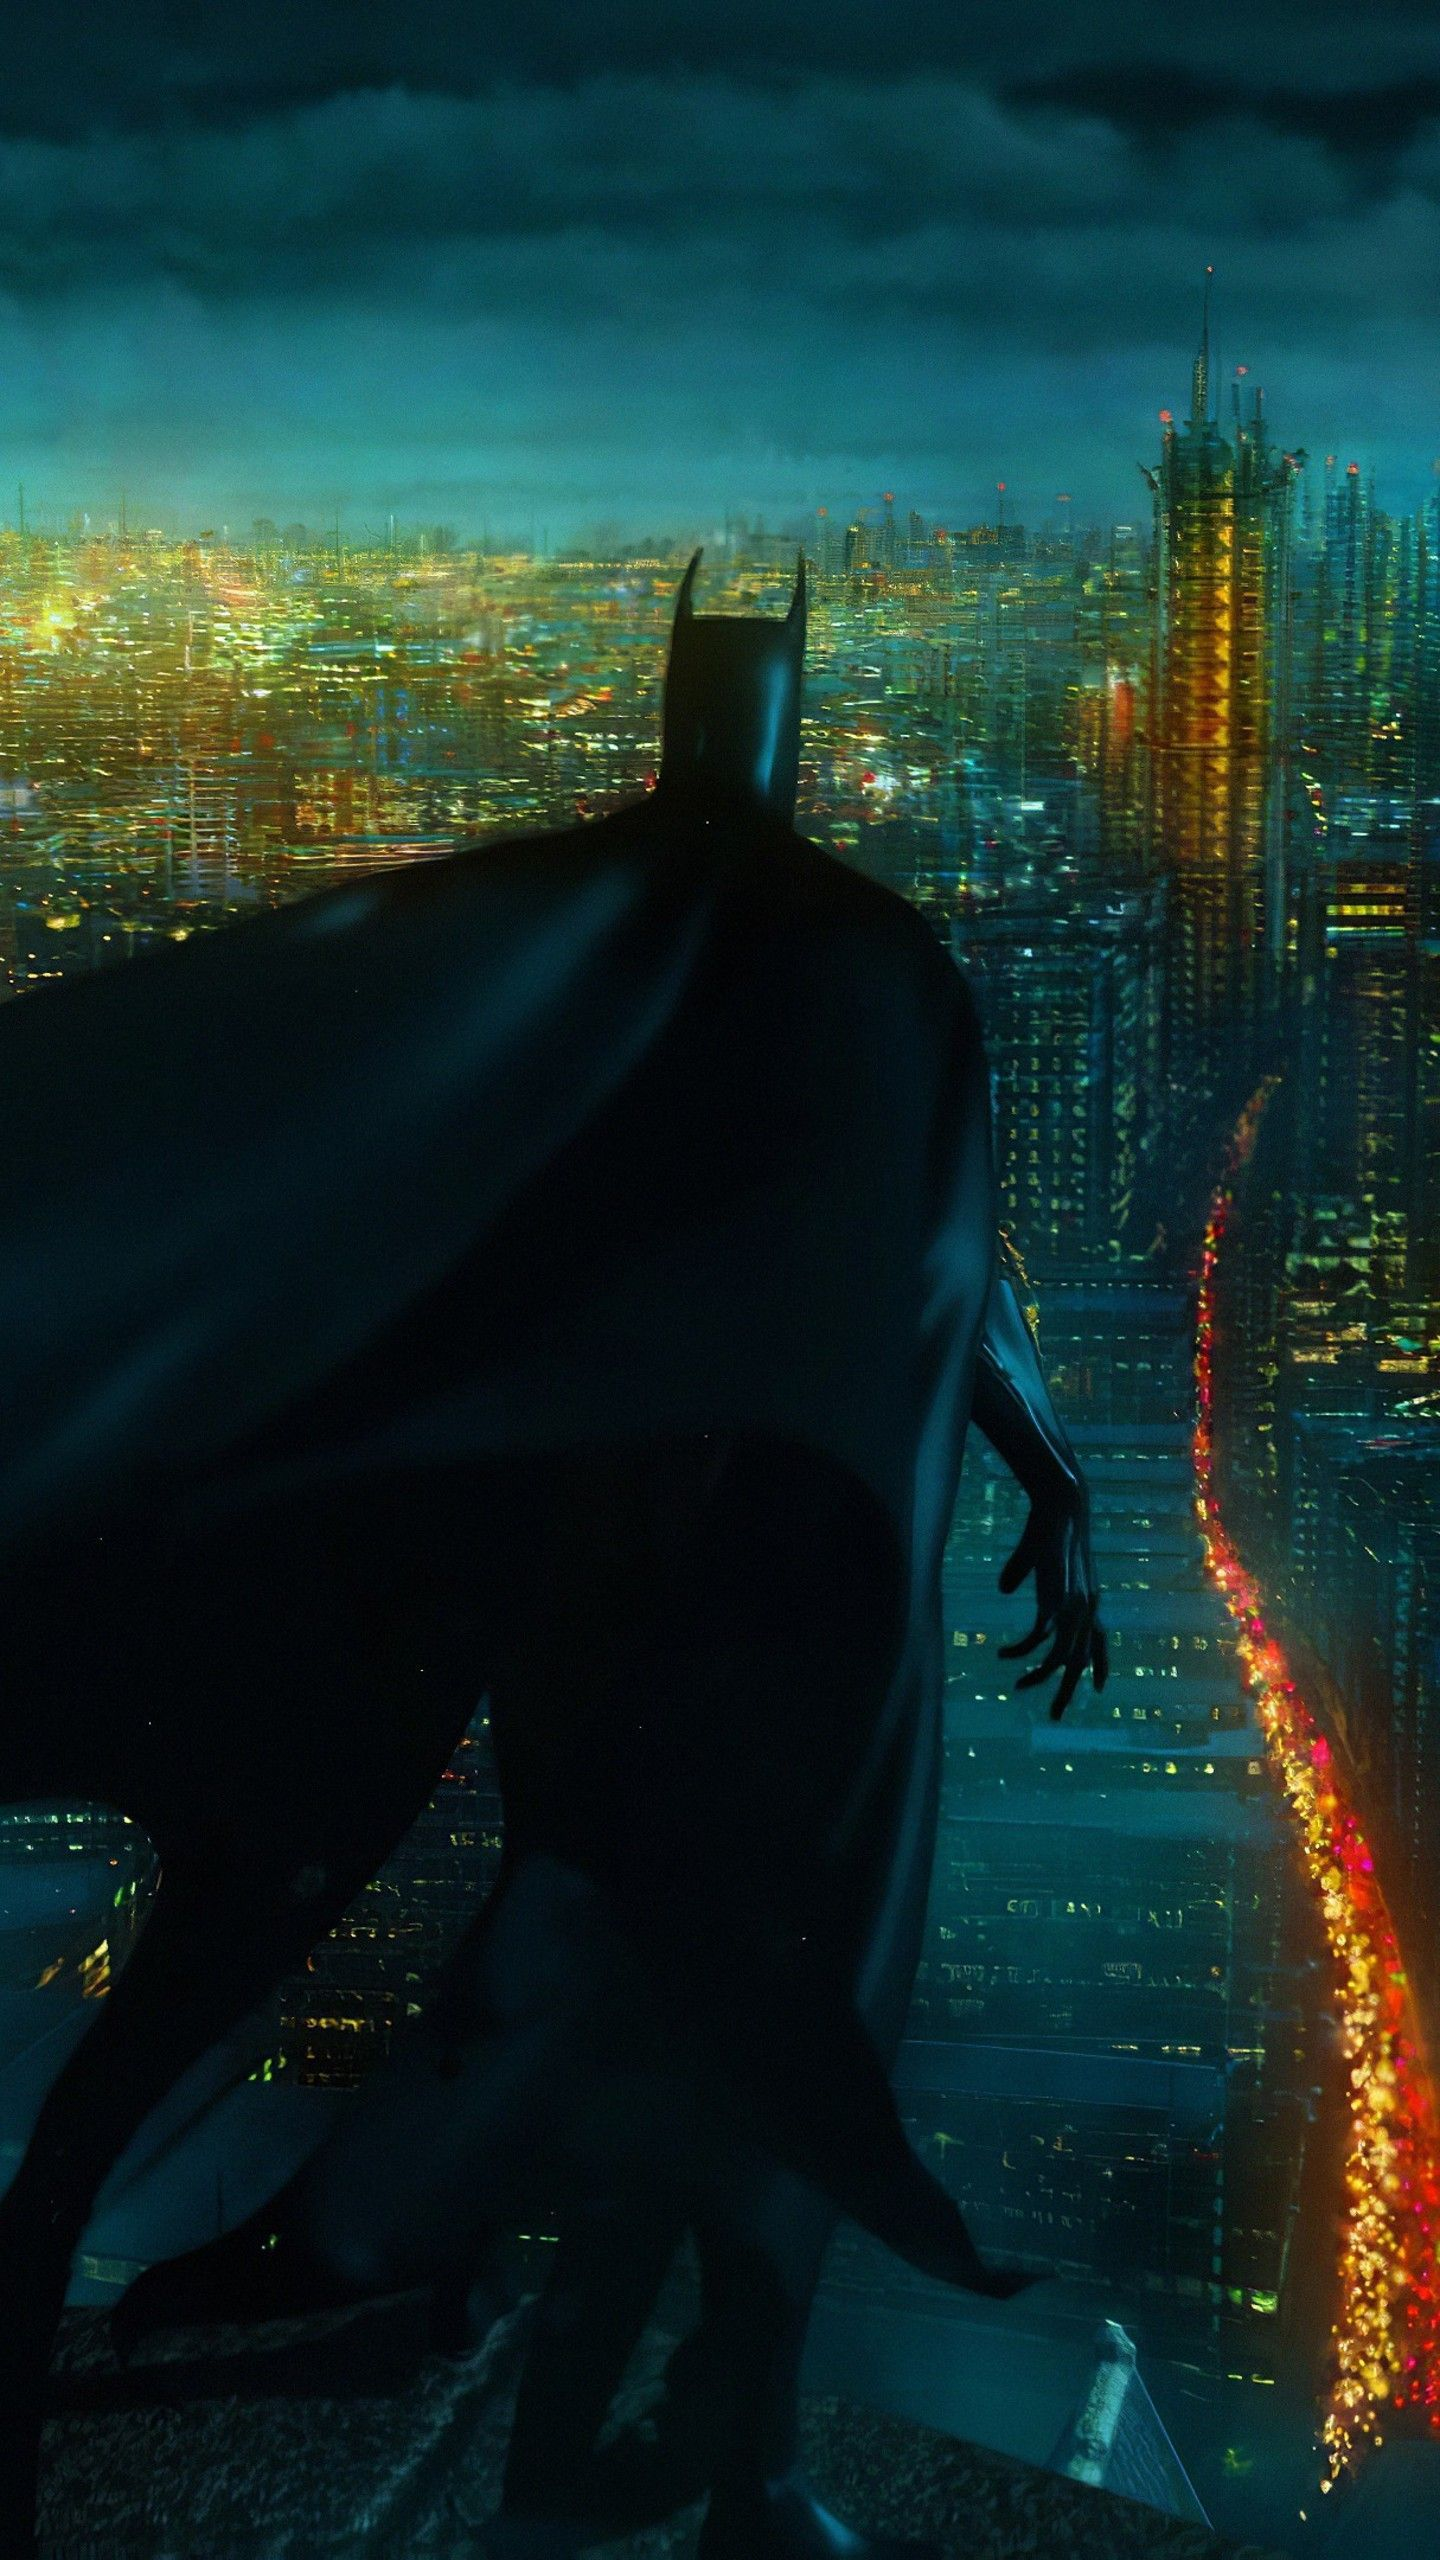 Every Batman Movie Ranked From Worst To Best (With images